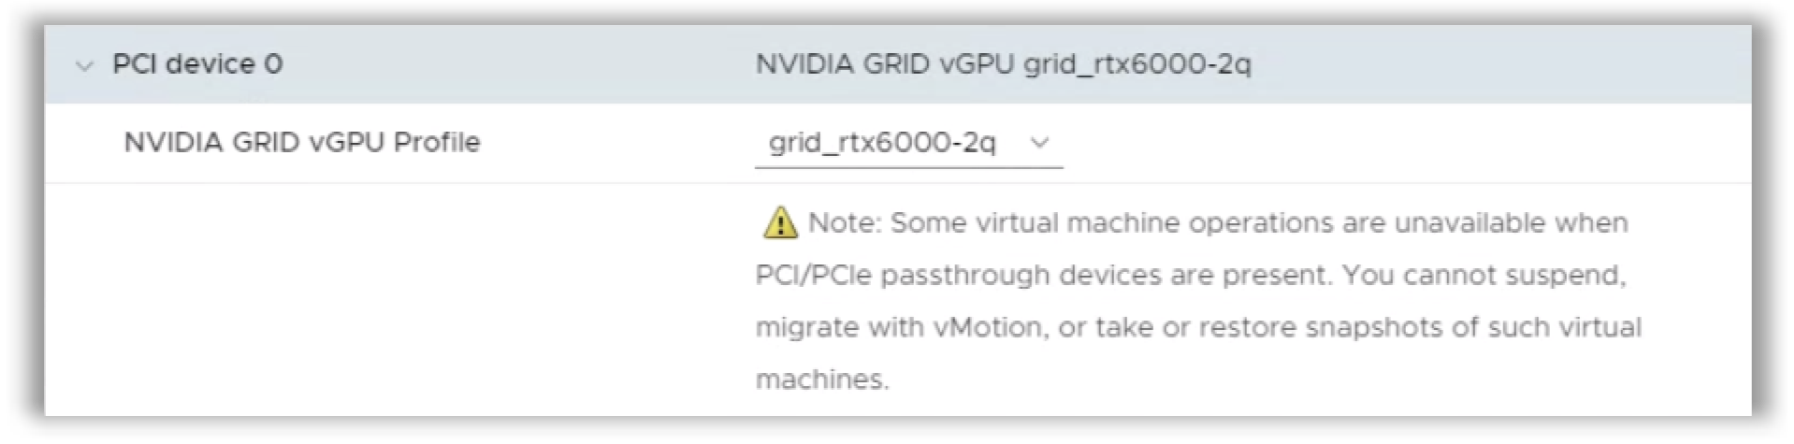 gpu graphics profile, nvidia grid vgpu profile, pci device